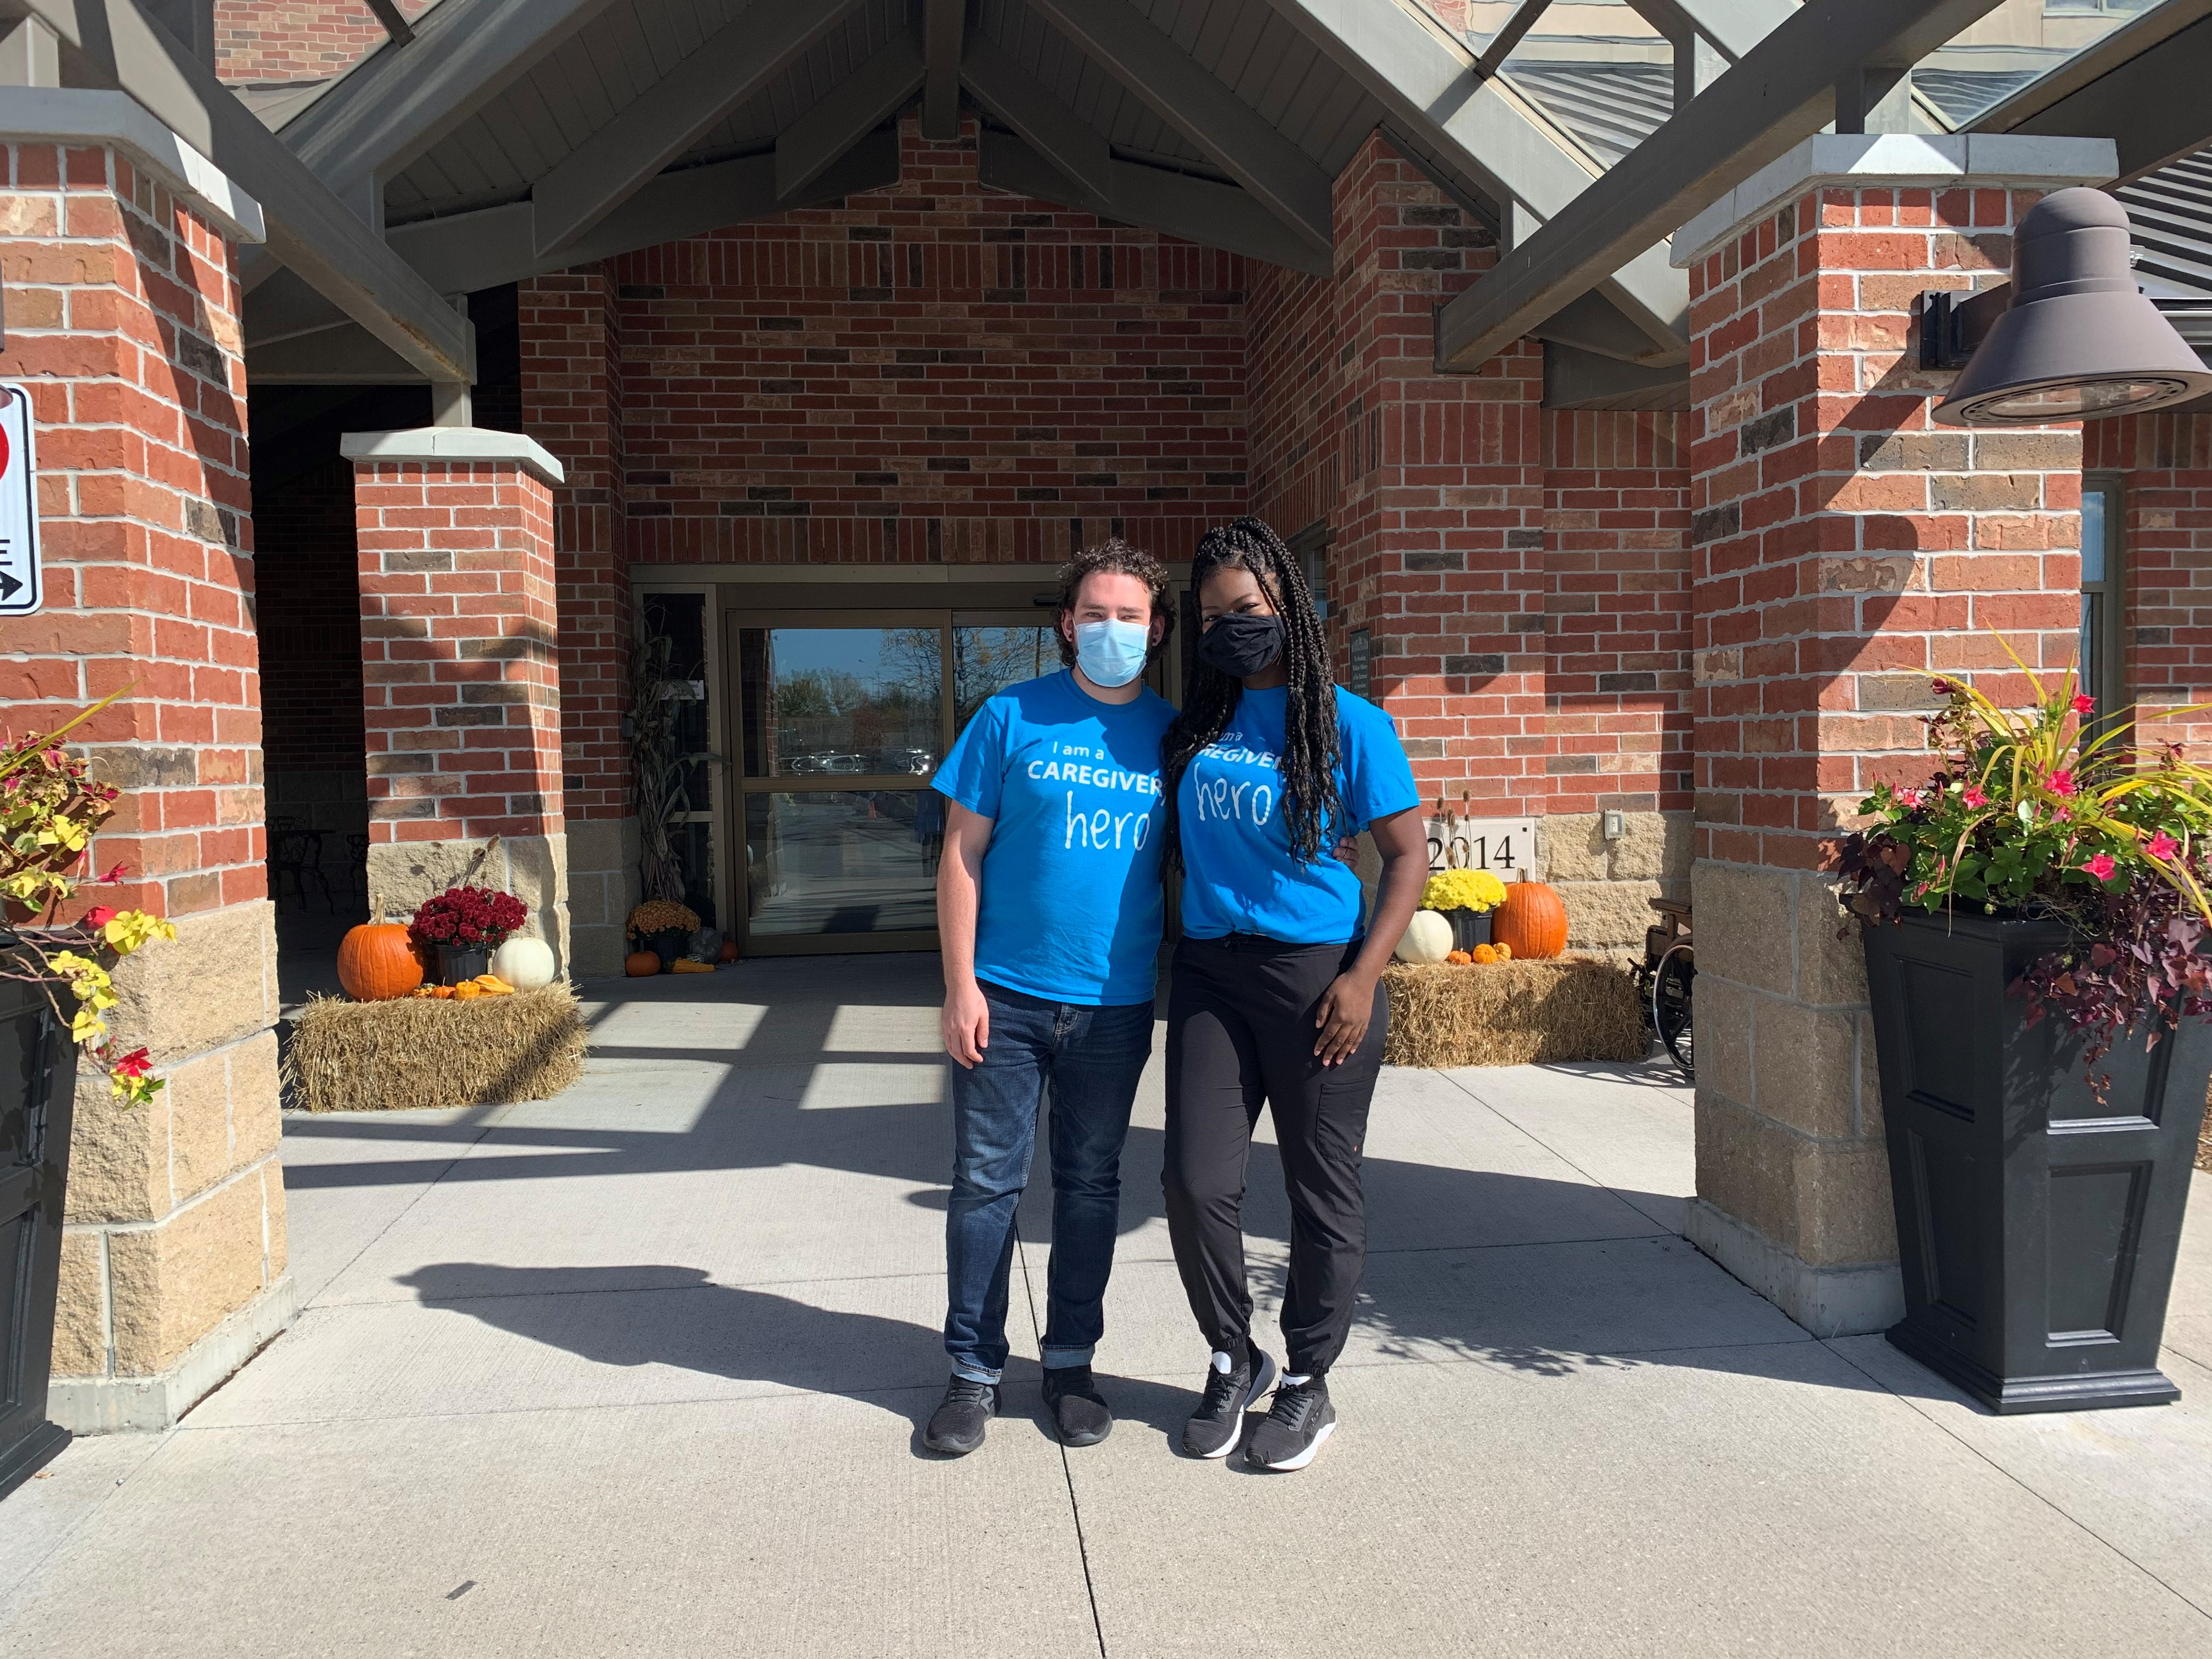 Angelo Ciardella and Trenee Webster are both personal support workers from The Village at St. Clair in Windsor